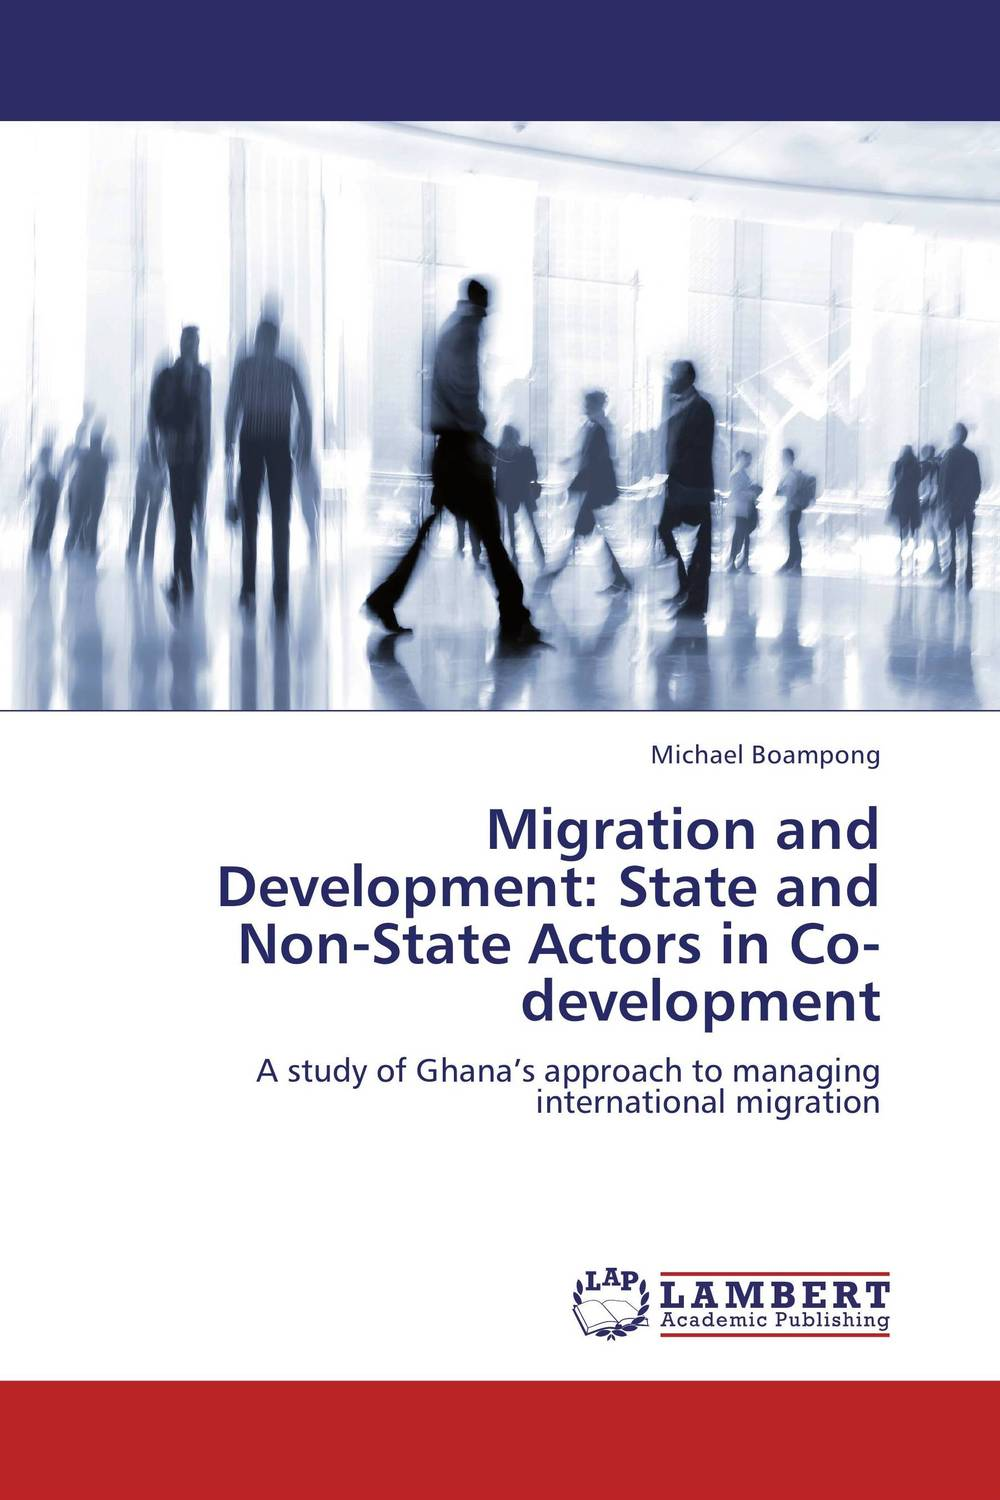 Migration and Development: State and Non-State Actors in Co-development